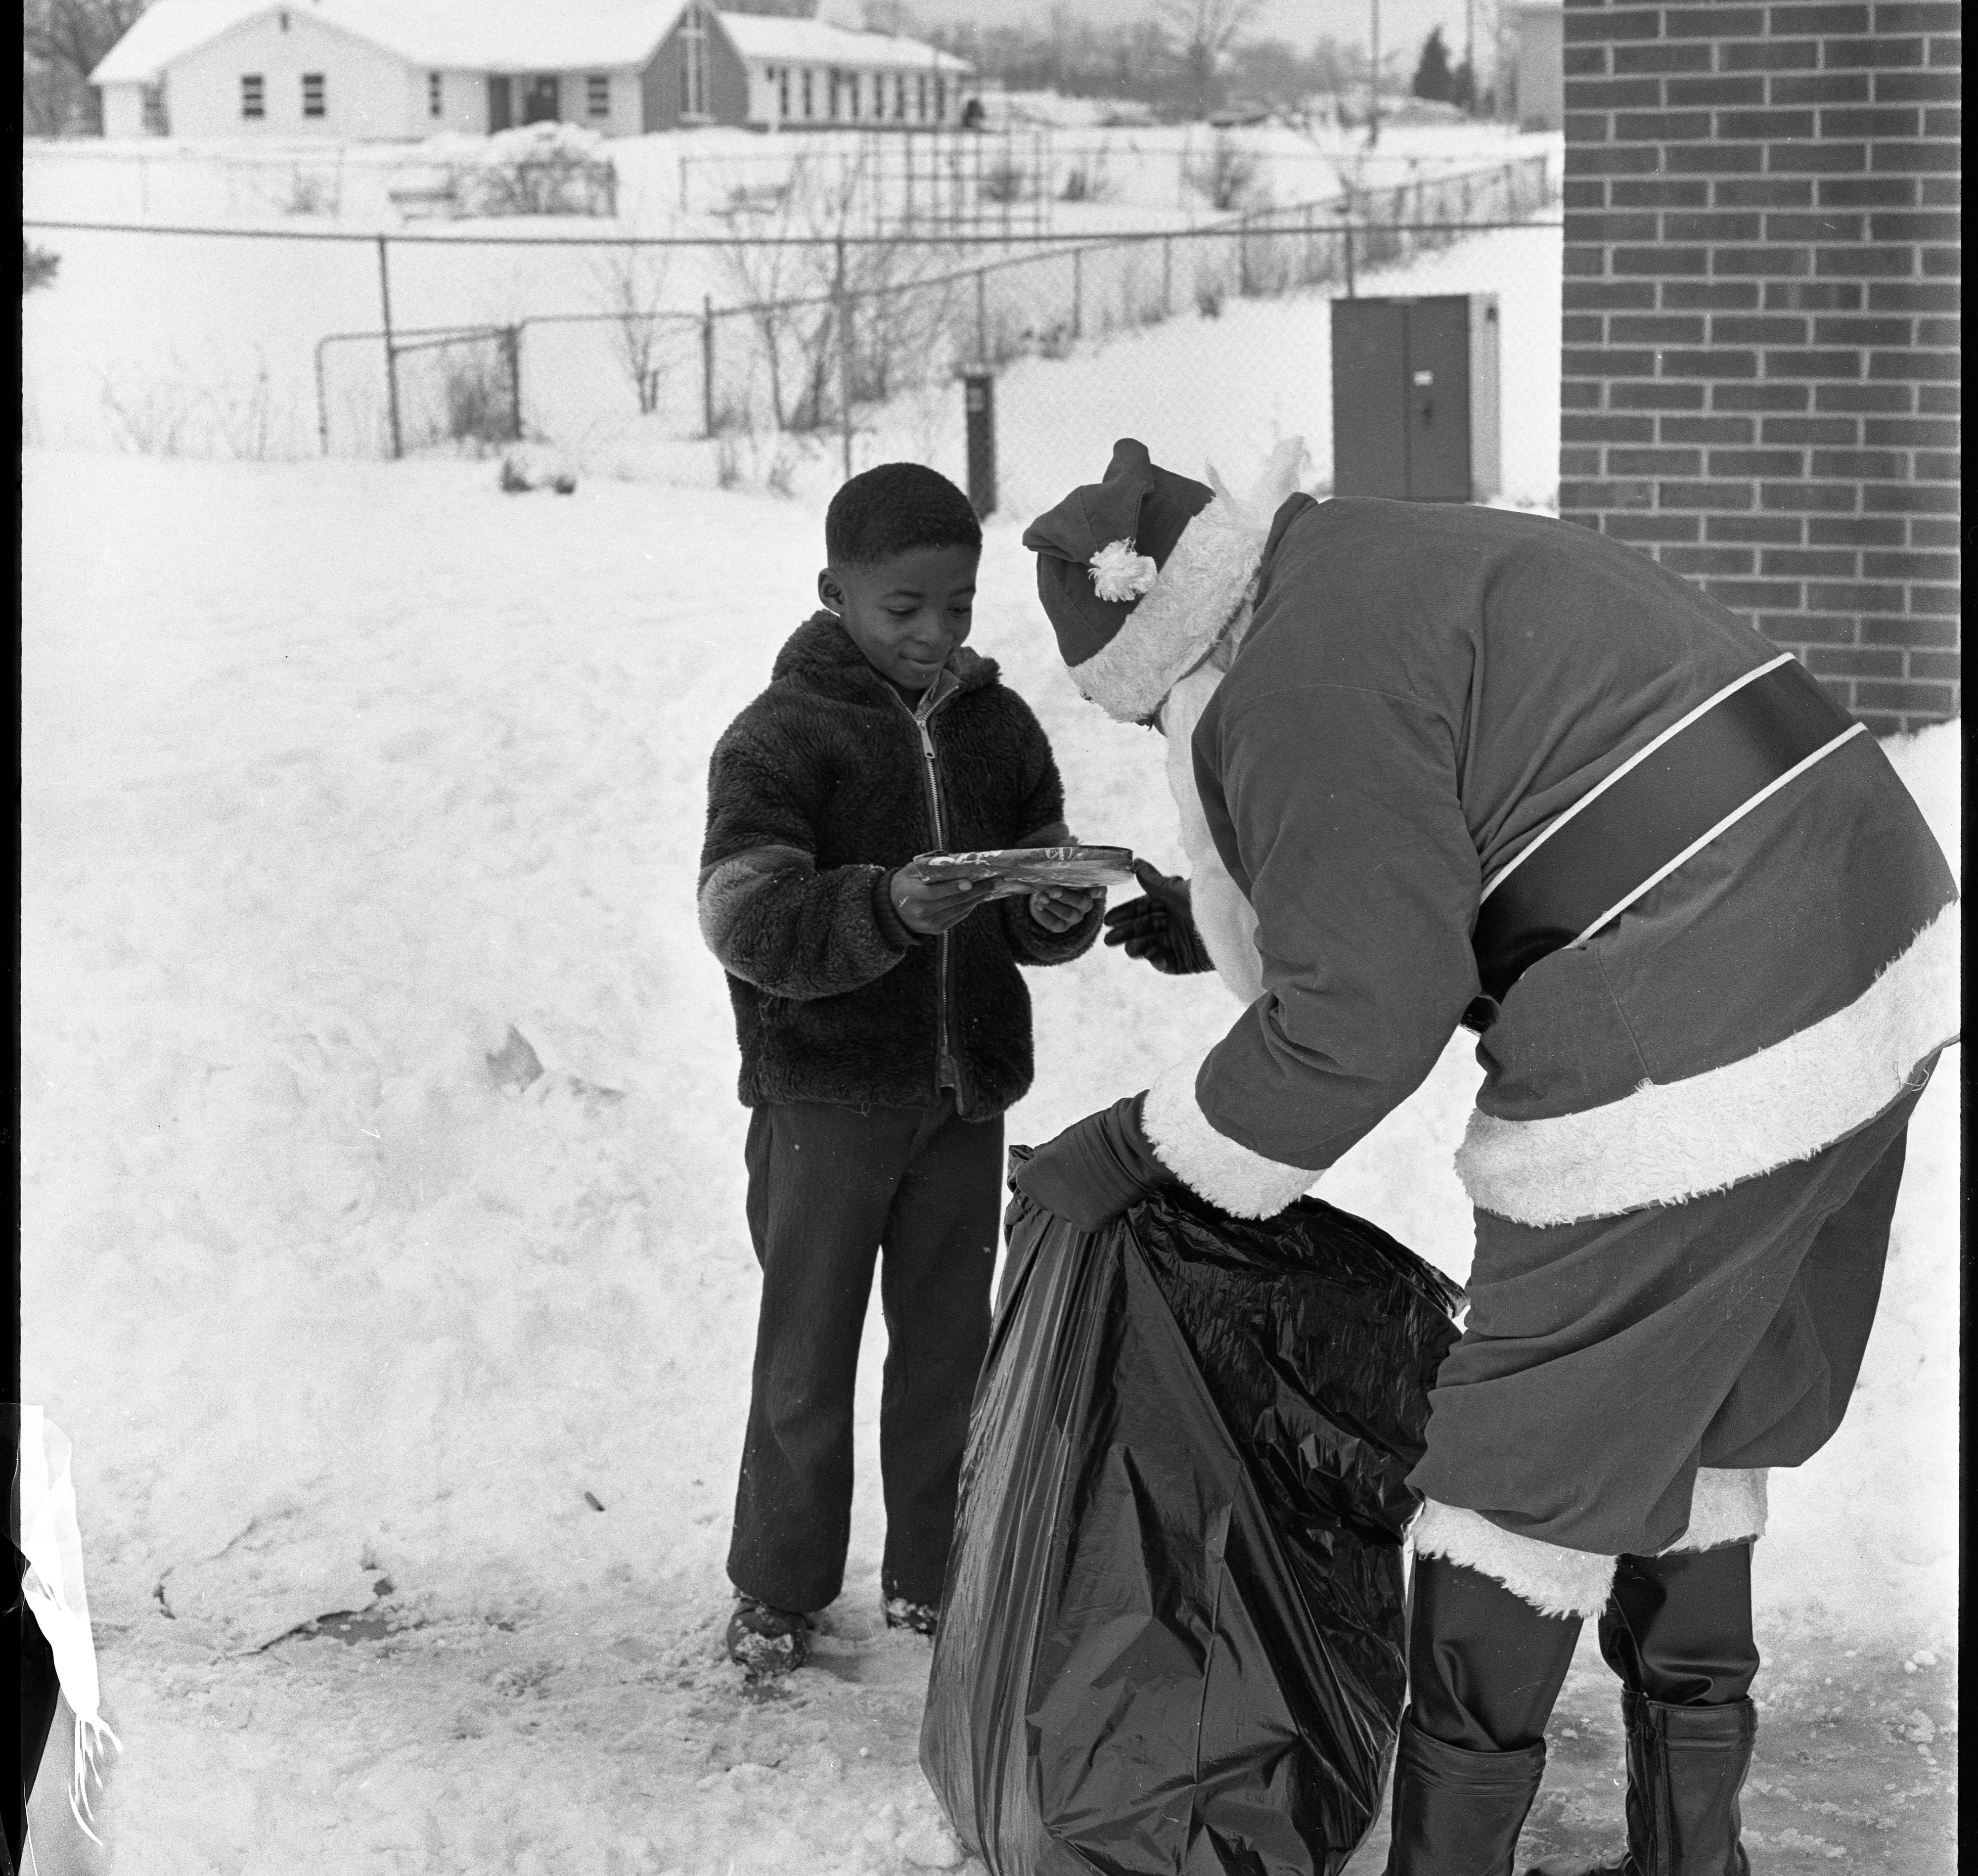 Rose Martin As Santa Gives Present To Mark Wilson, December 25, 1973 image